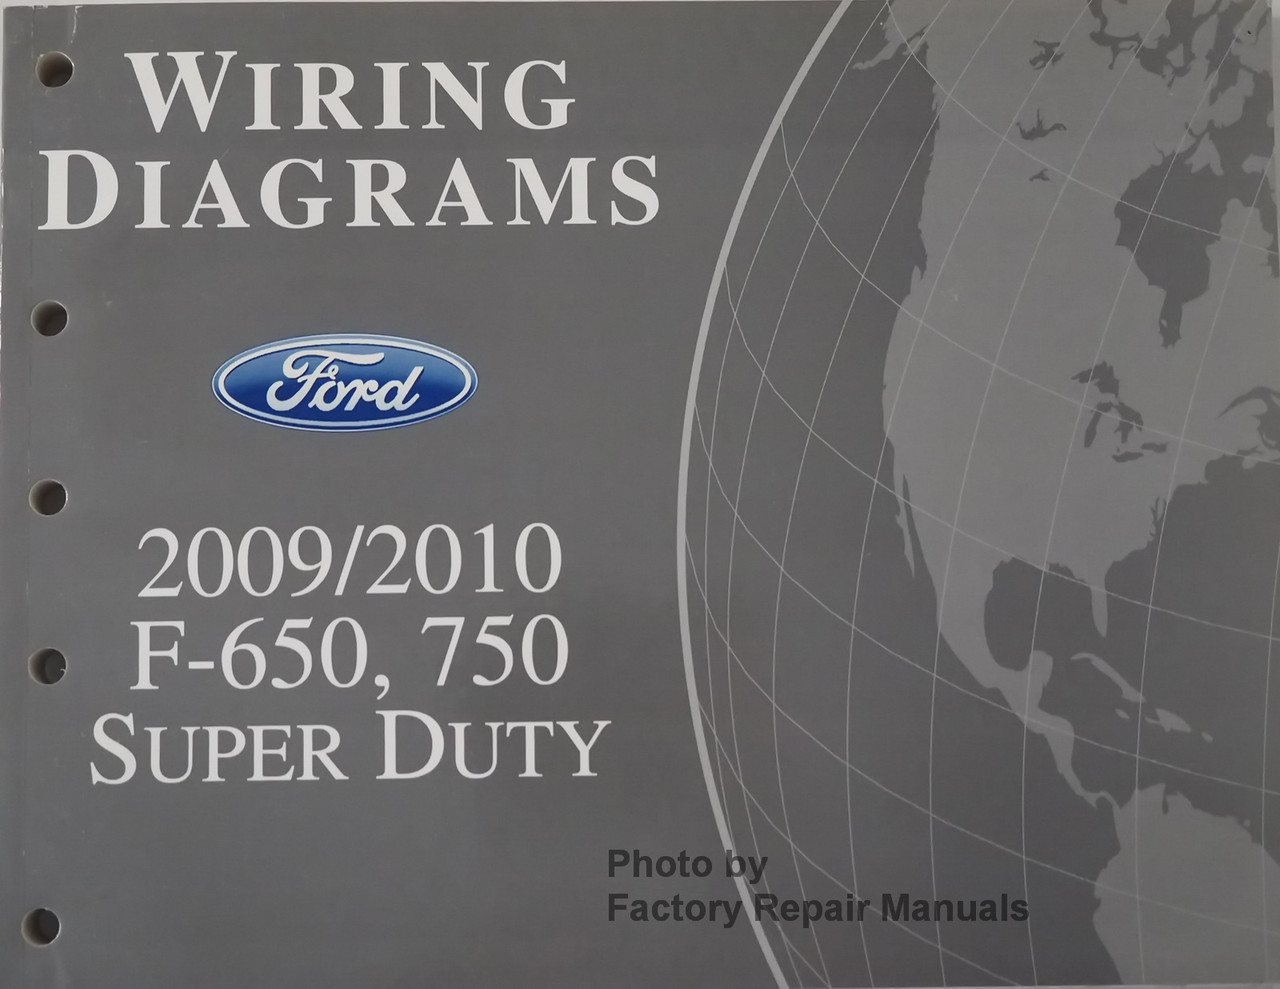 2009 2010 Ford F650 F750 Truck Electrical Wiring Diagrams Manual Original -  Factory Repair Manuals | Ford F650 Wire Diagram |  | Factory Repair Manuals